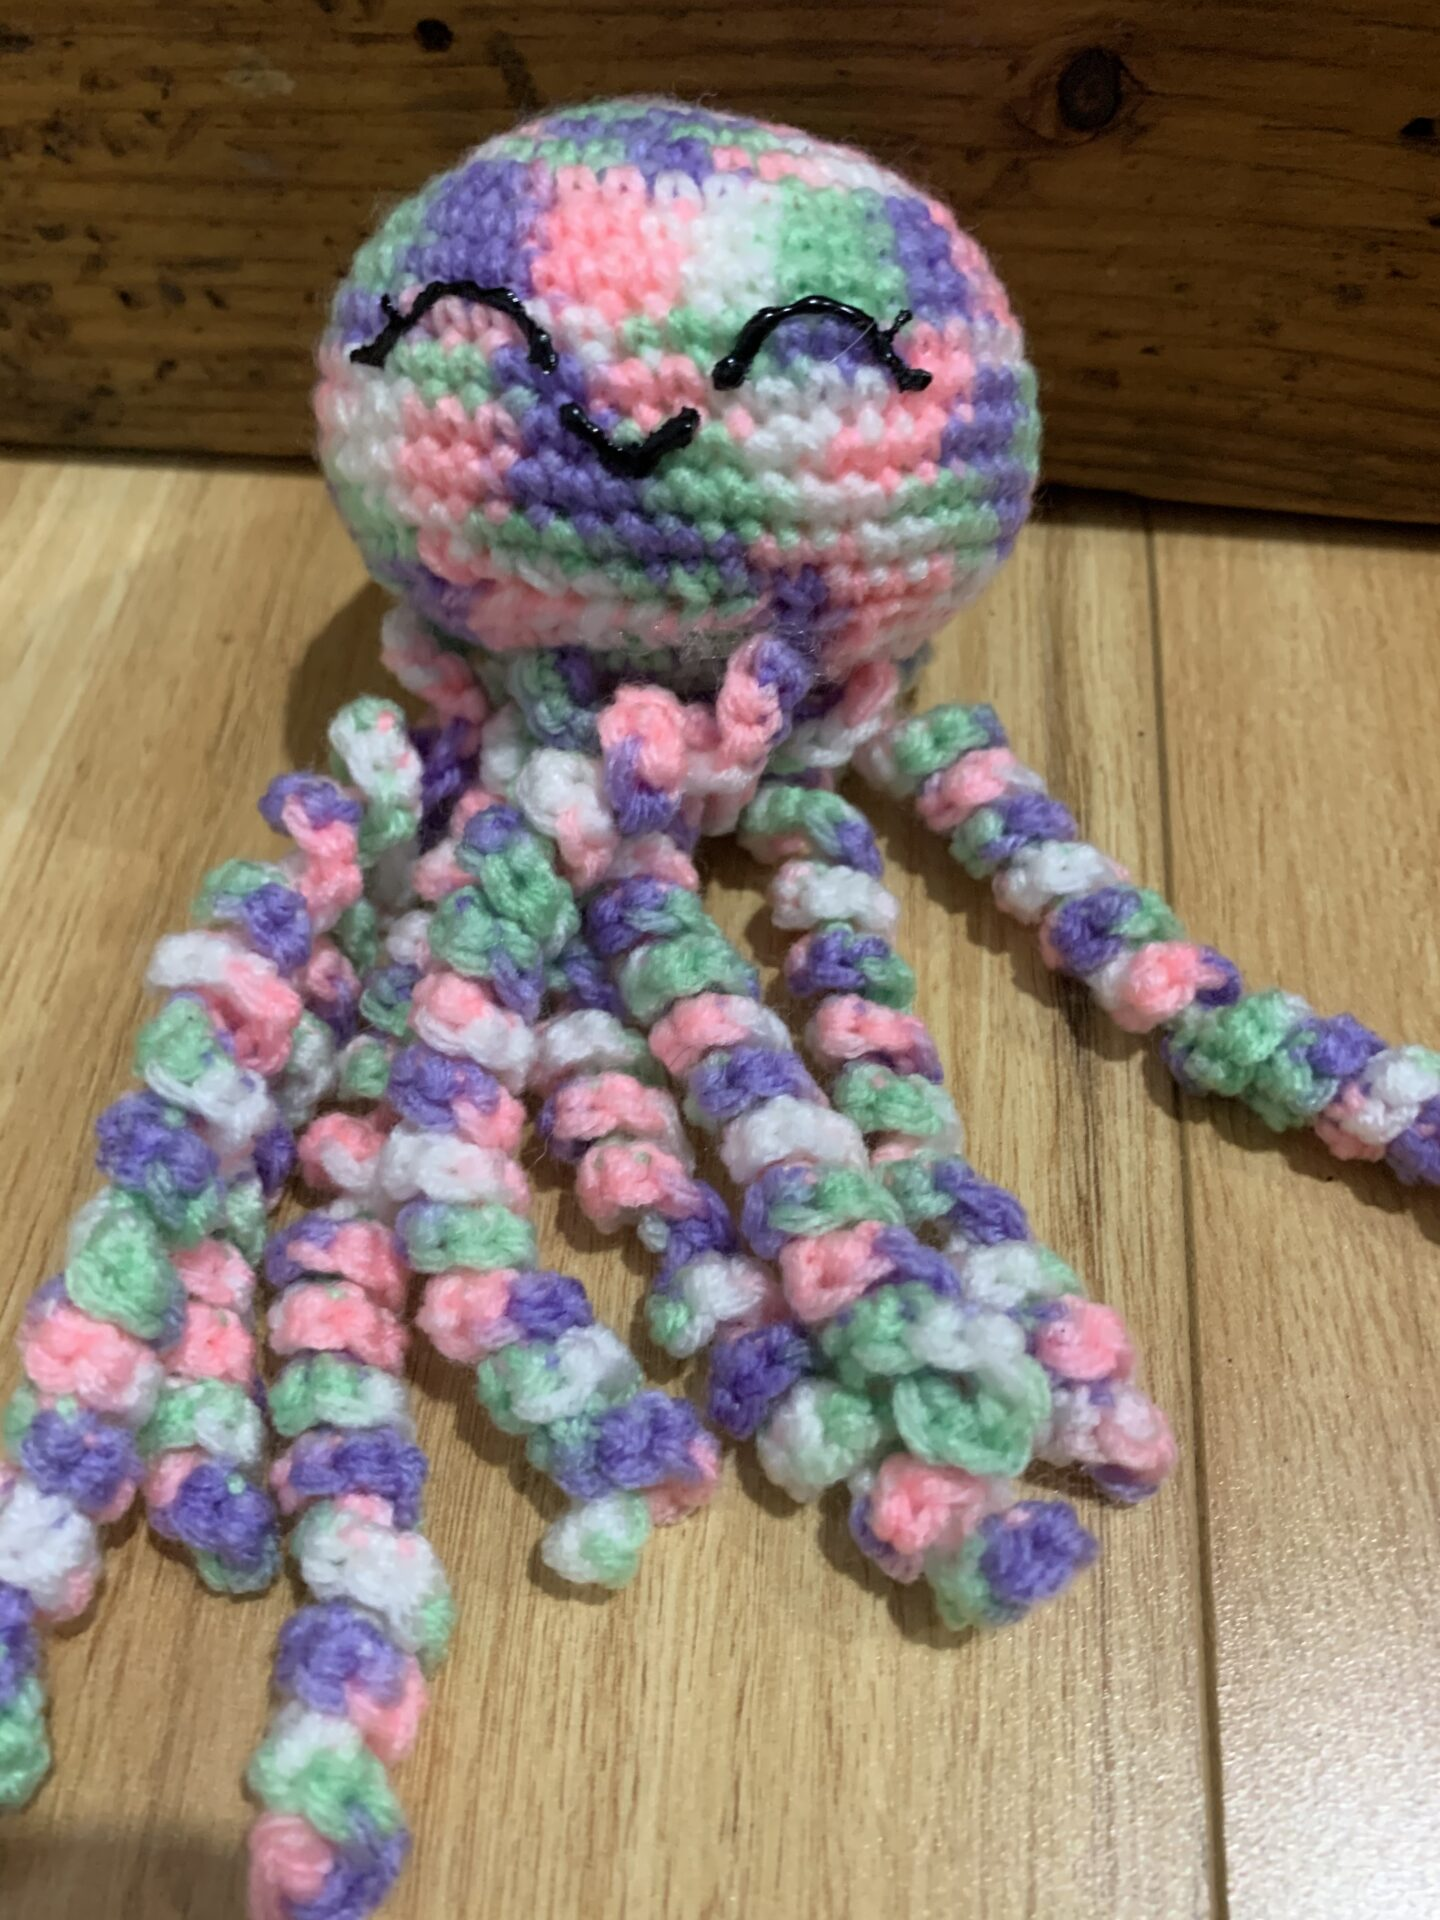 Crochet Octopus Pink/purple/green/white Multi By Ernie Spackler